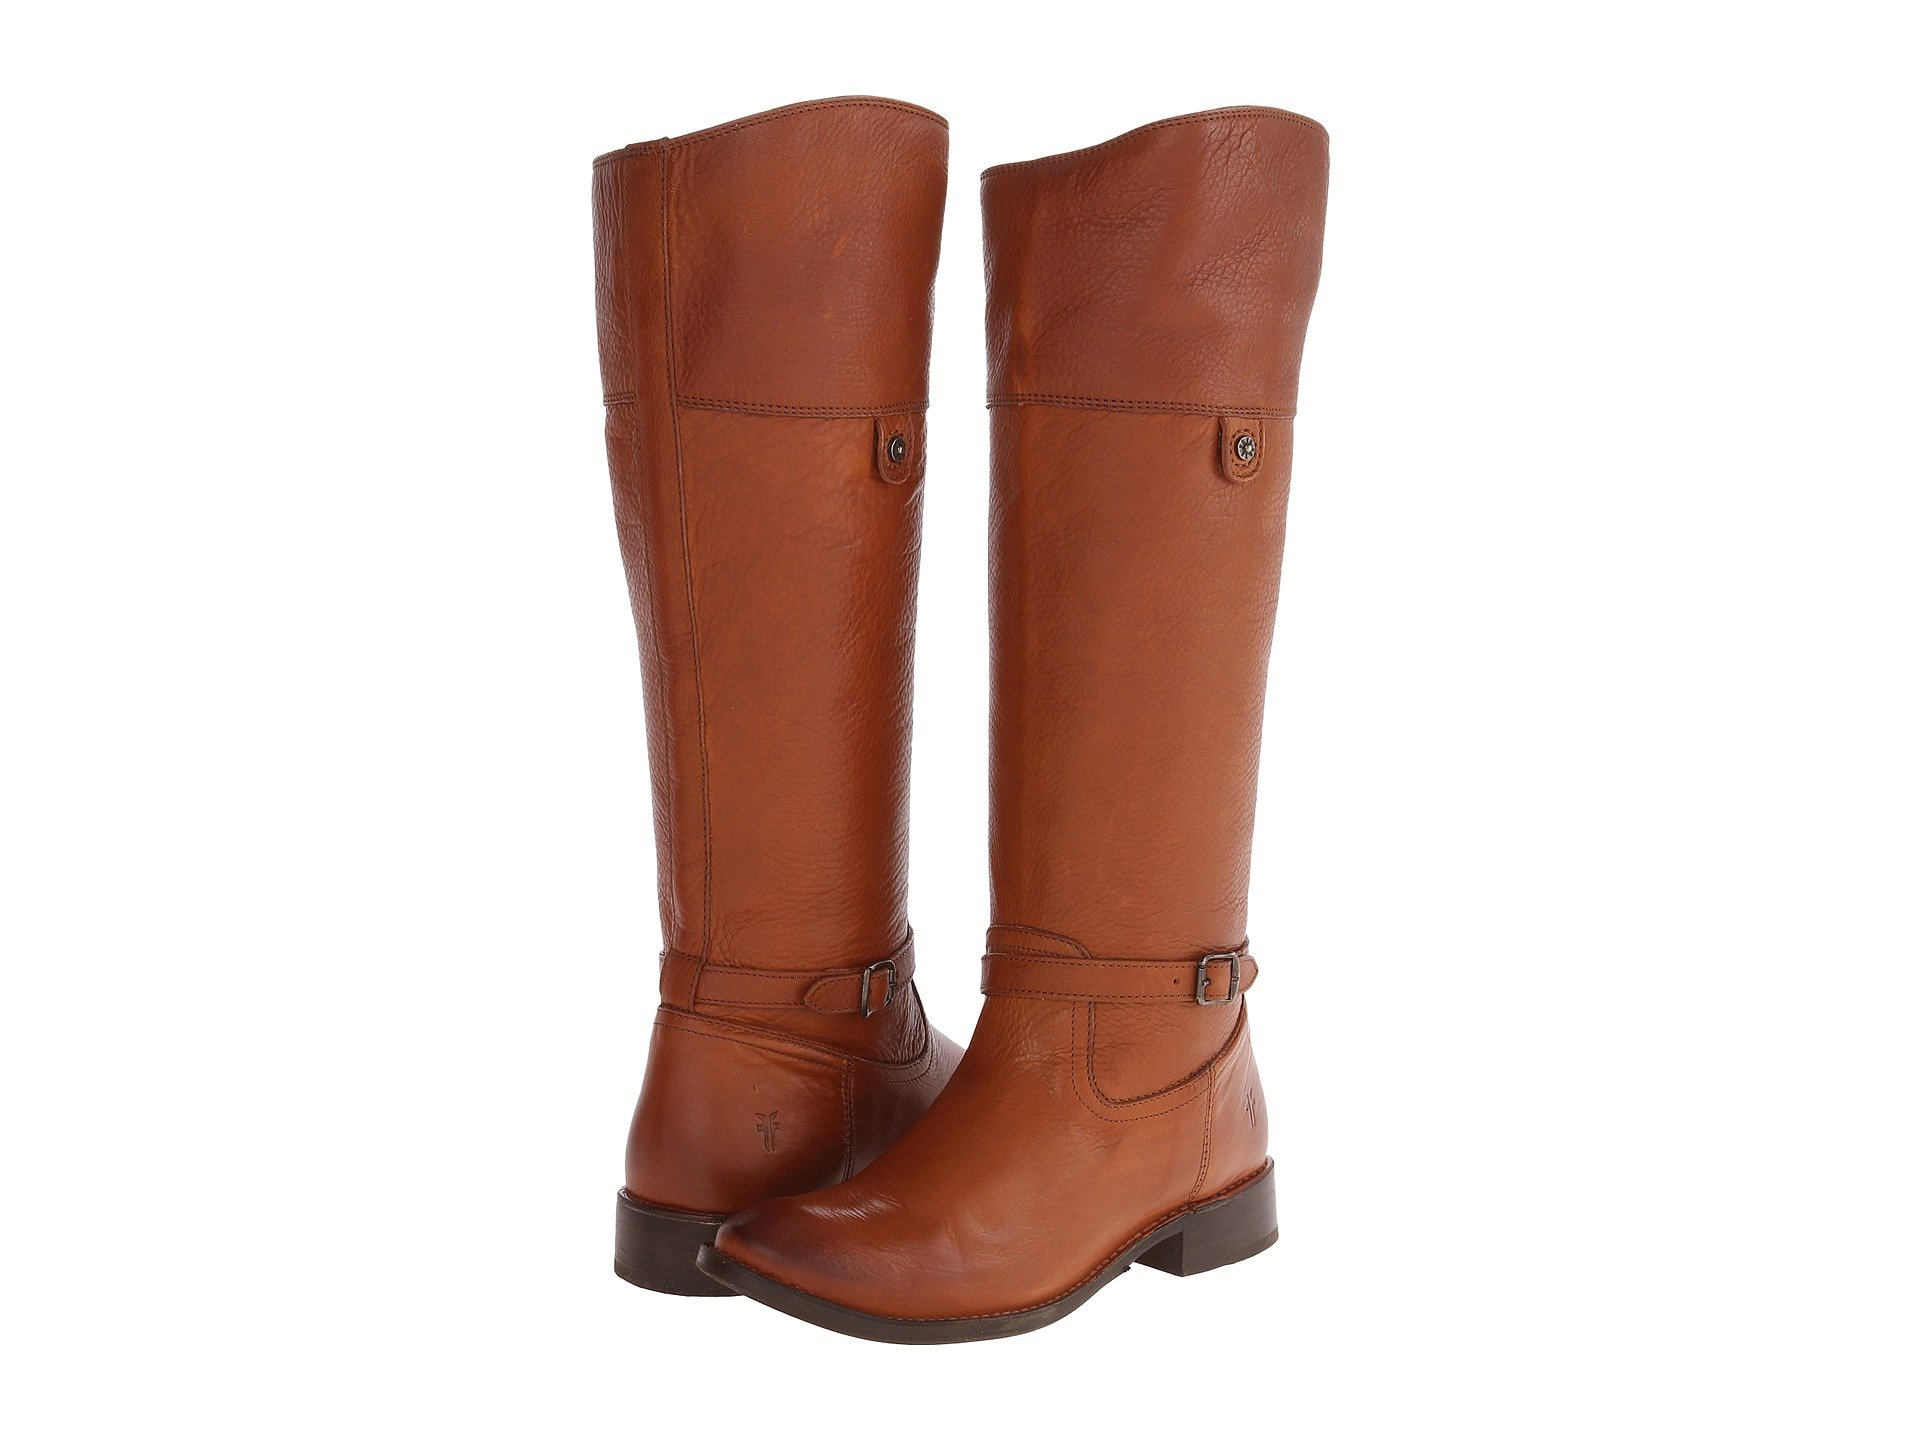 Shirley Rivet Tall, Whiskey Soft Vintage Leather